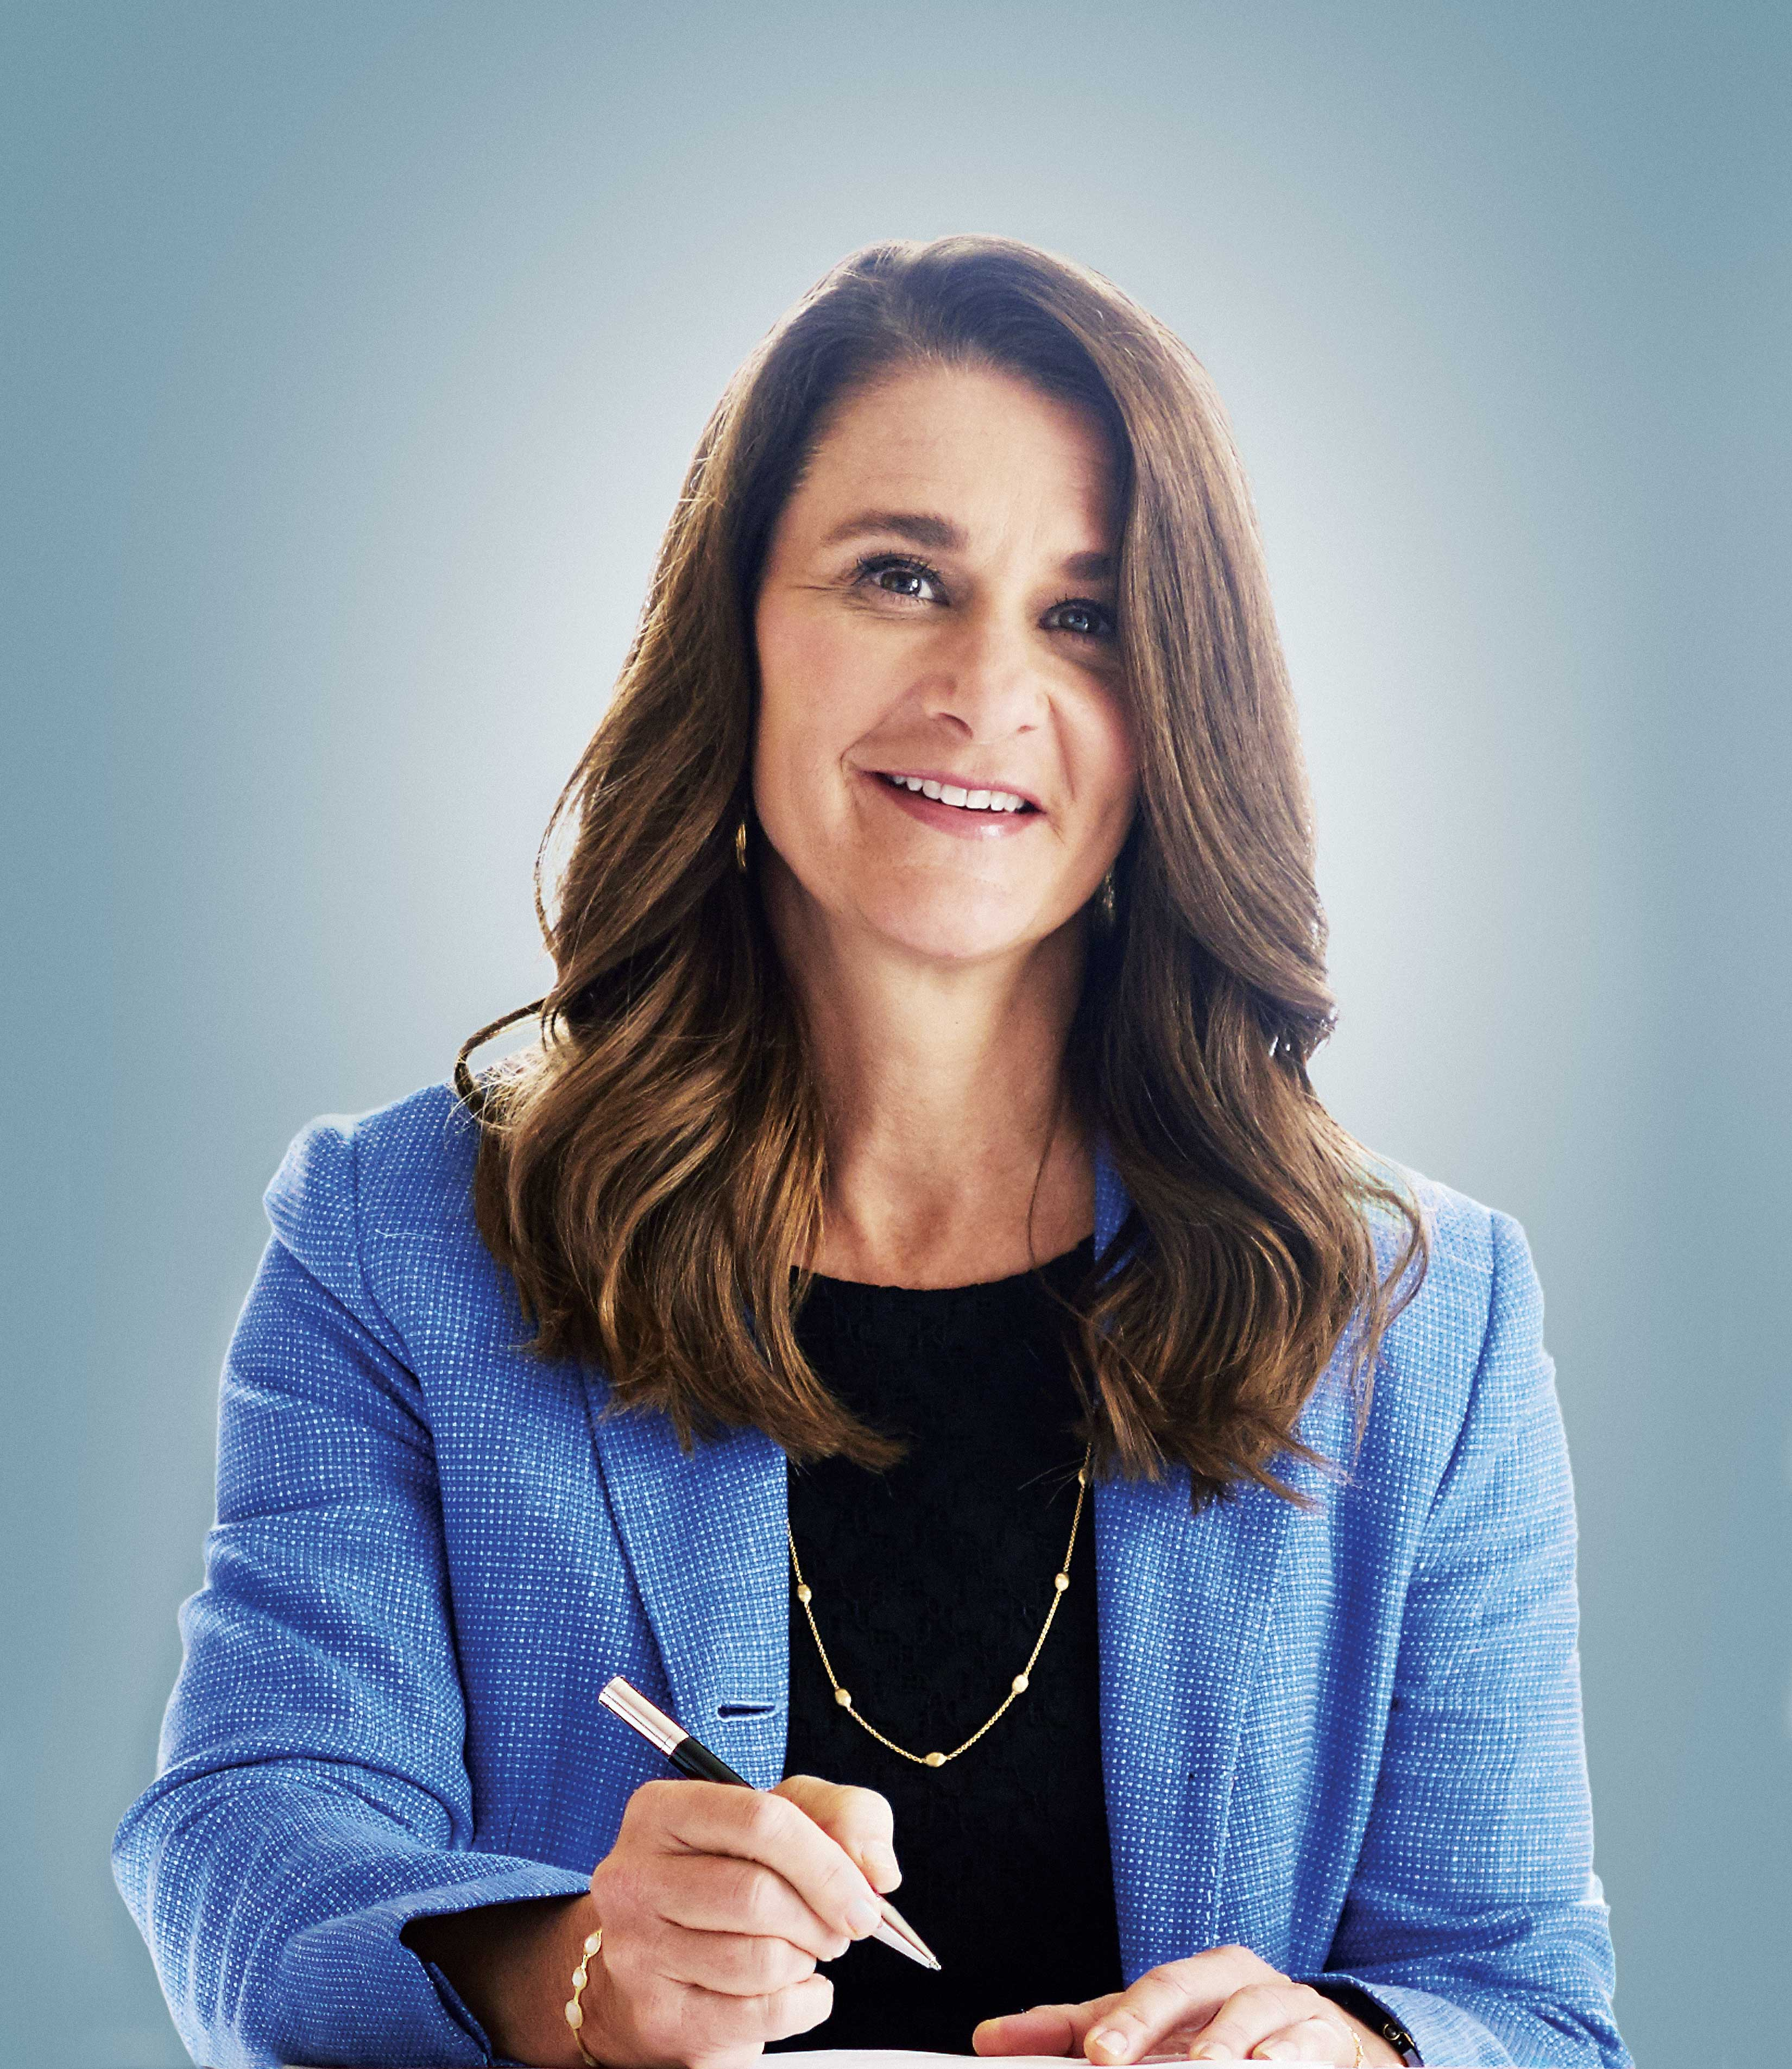 Melinda Gates. (Photo: Michael Prince/The Forbes Collection)